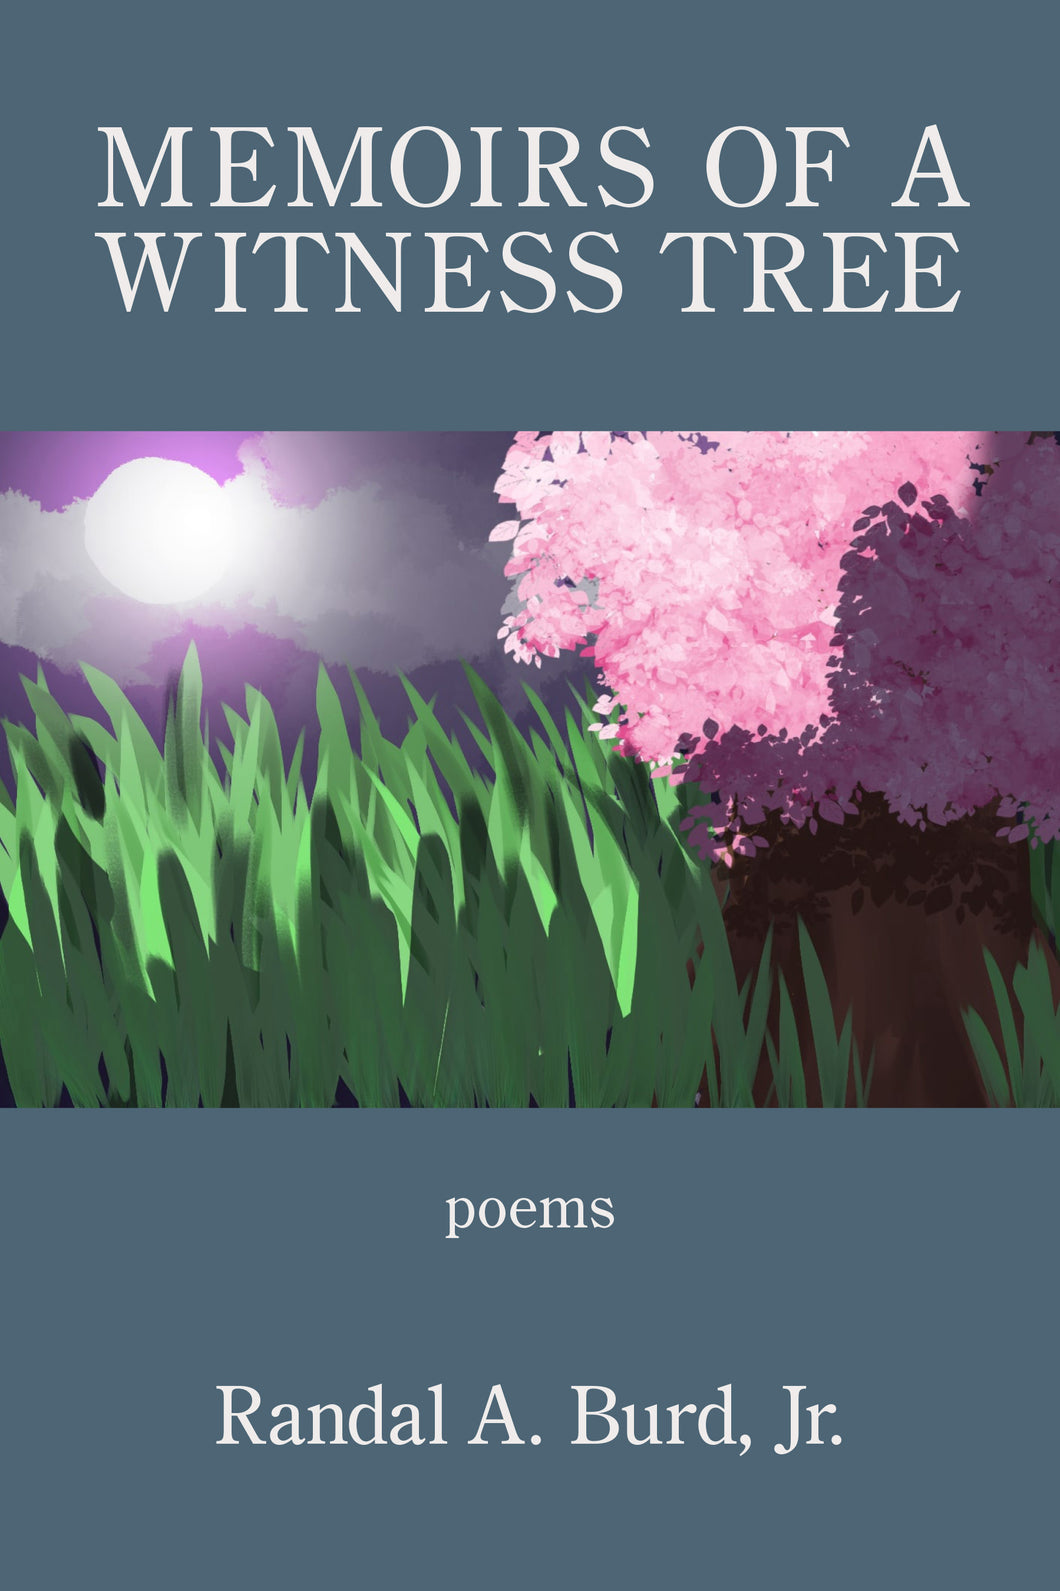 Memoirs of a Witness Tree